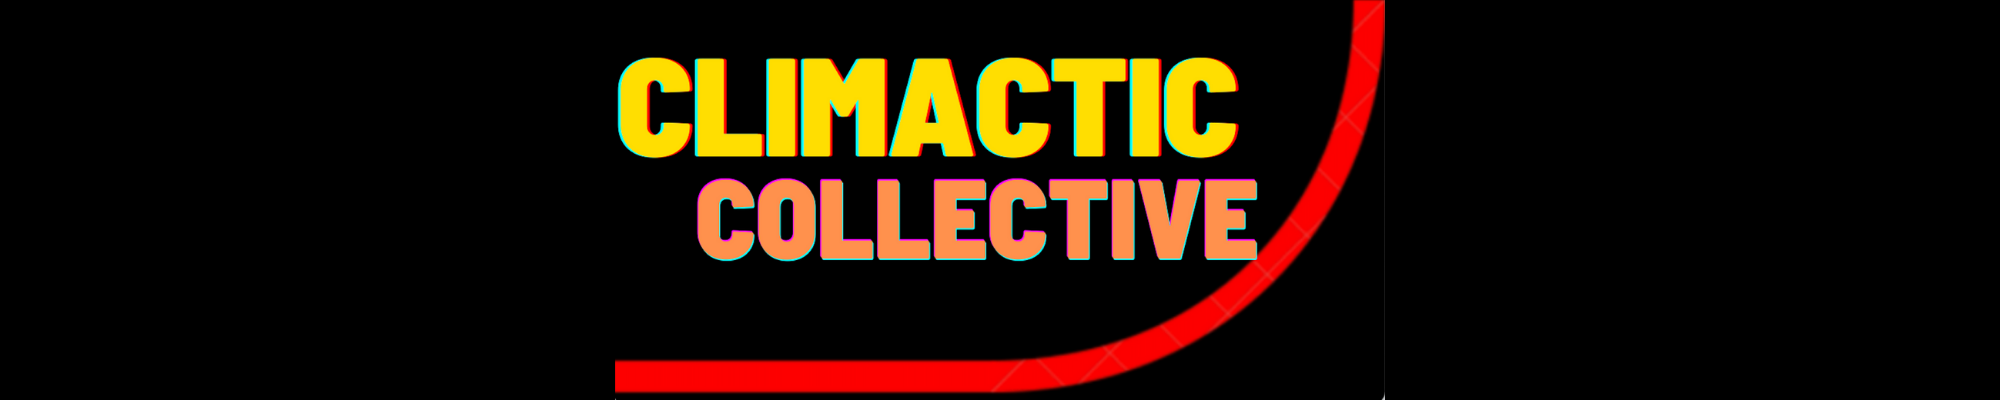 Climactic Collective Logo